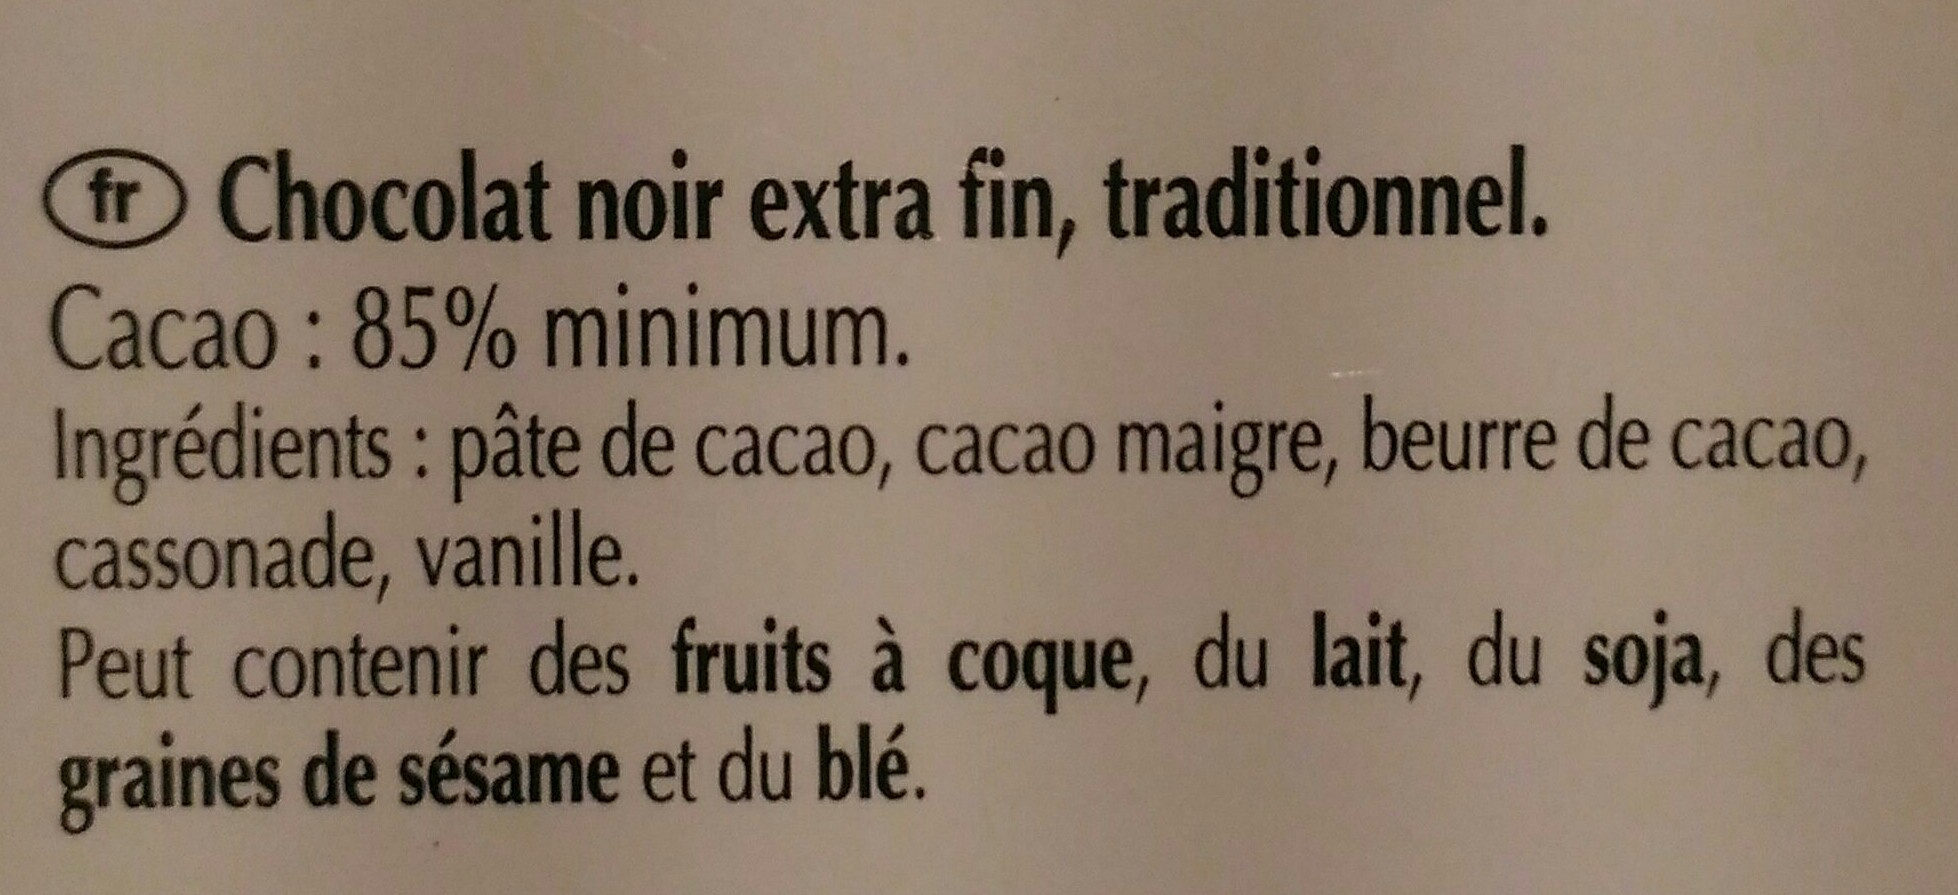 Excellence 85% Cacao Noir Puissant (offre gourmet) - Ingredients - fr